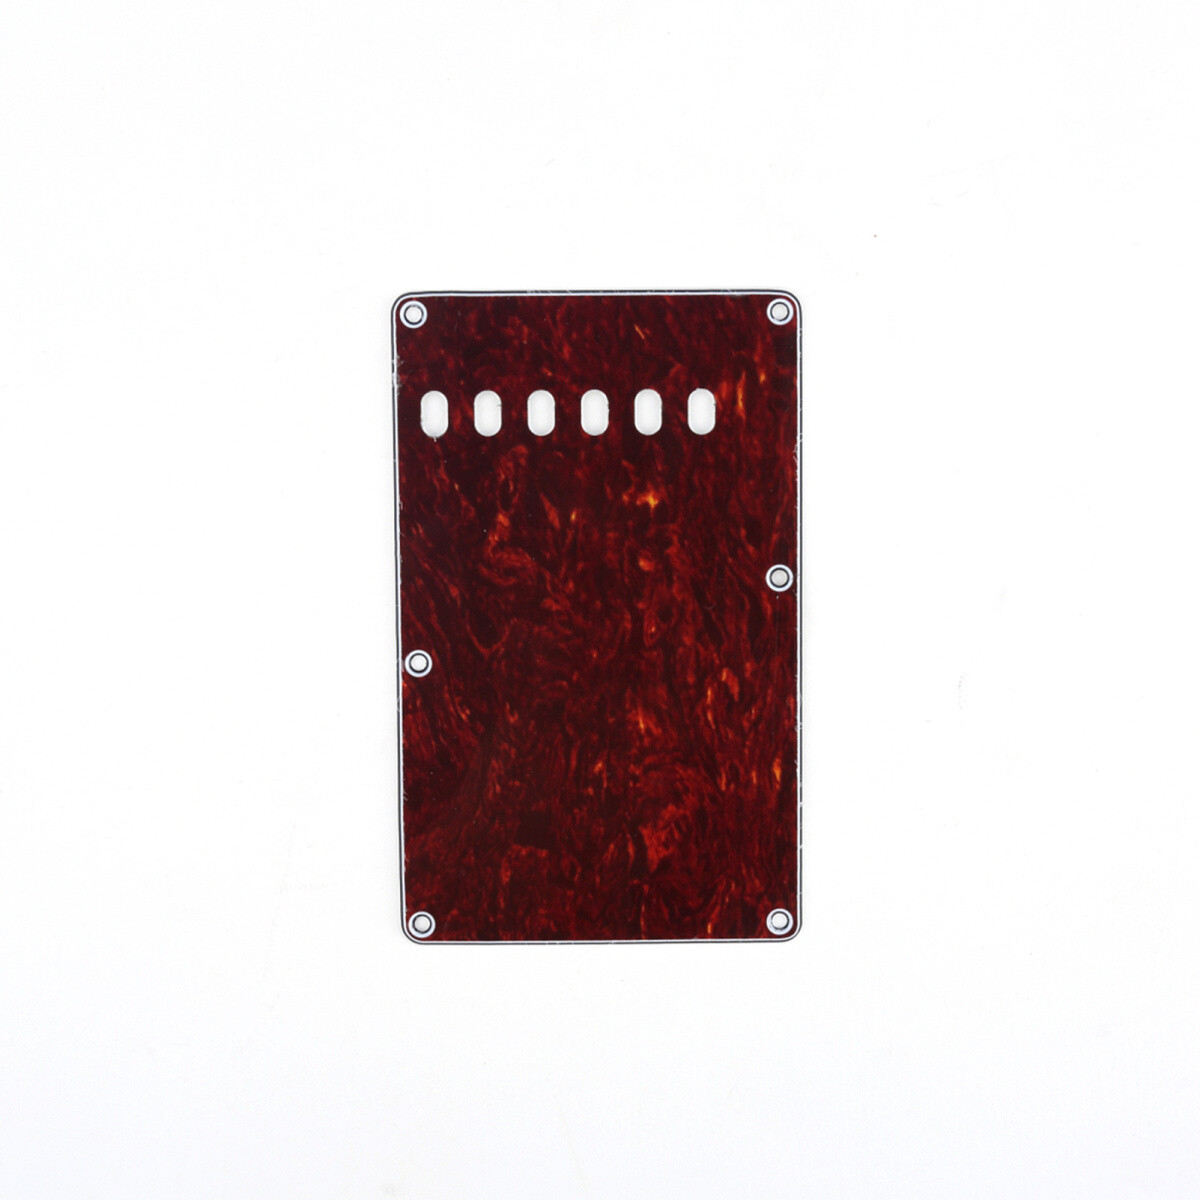 Brio Red Tortoise Vintage Style Back Plate Tremolo Cover 4 ply - US/Mexican Fender®Strat® Fit